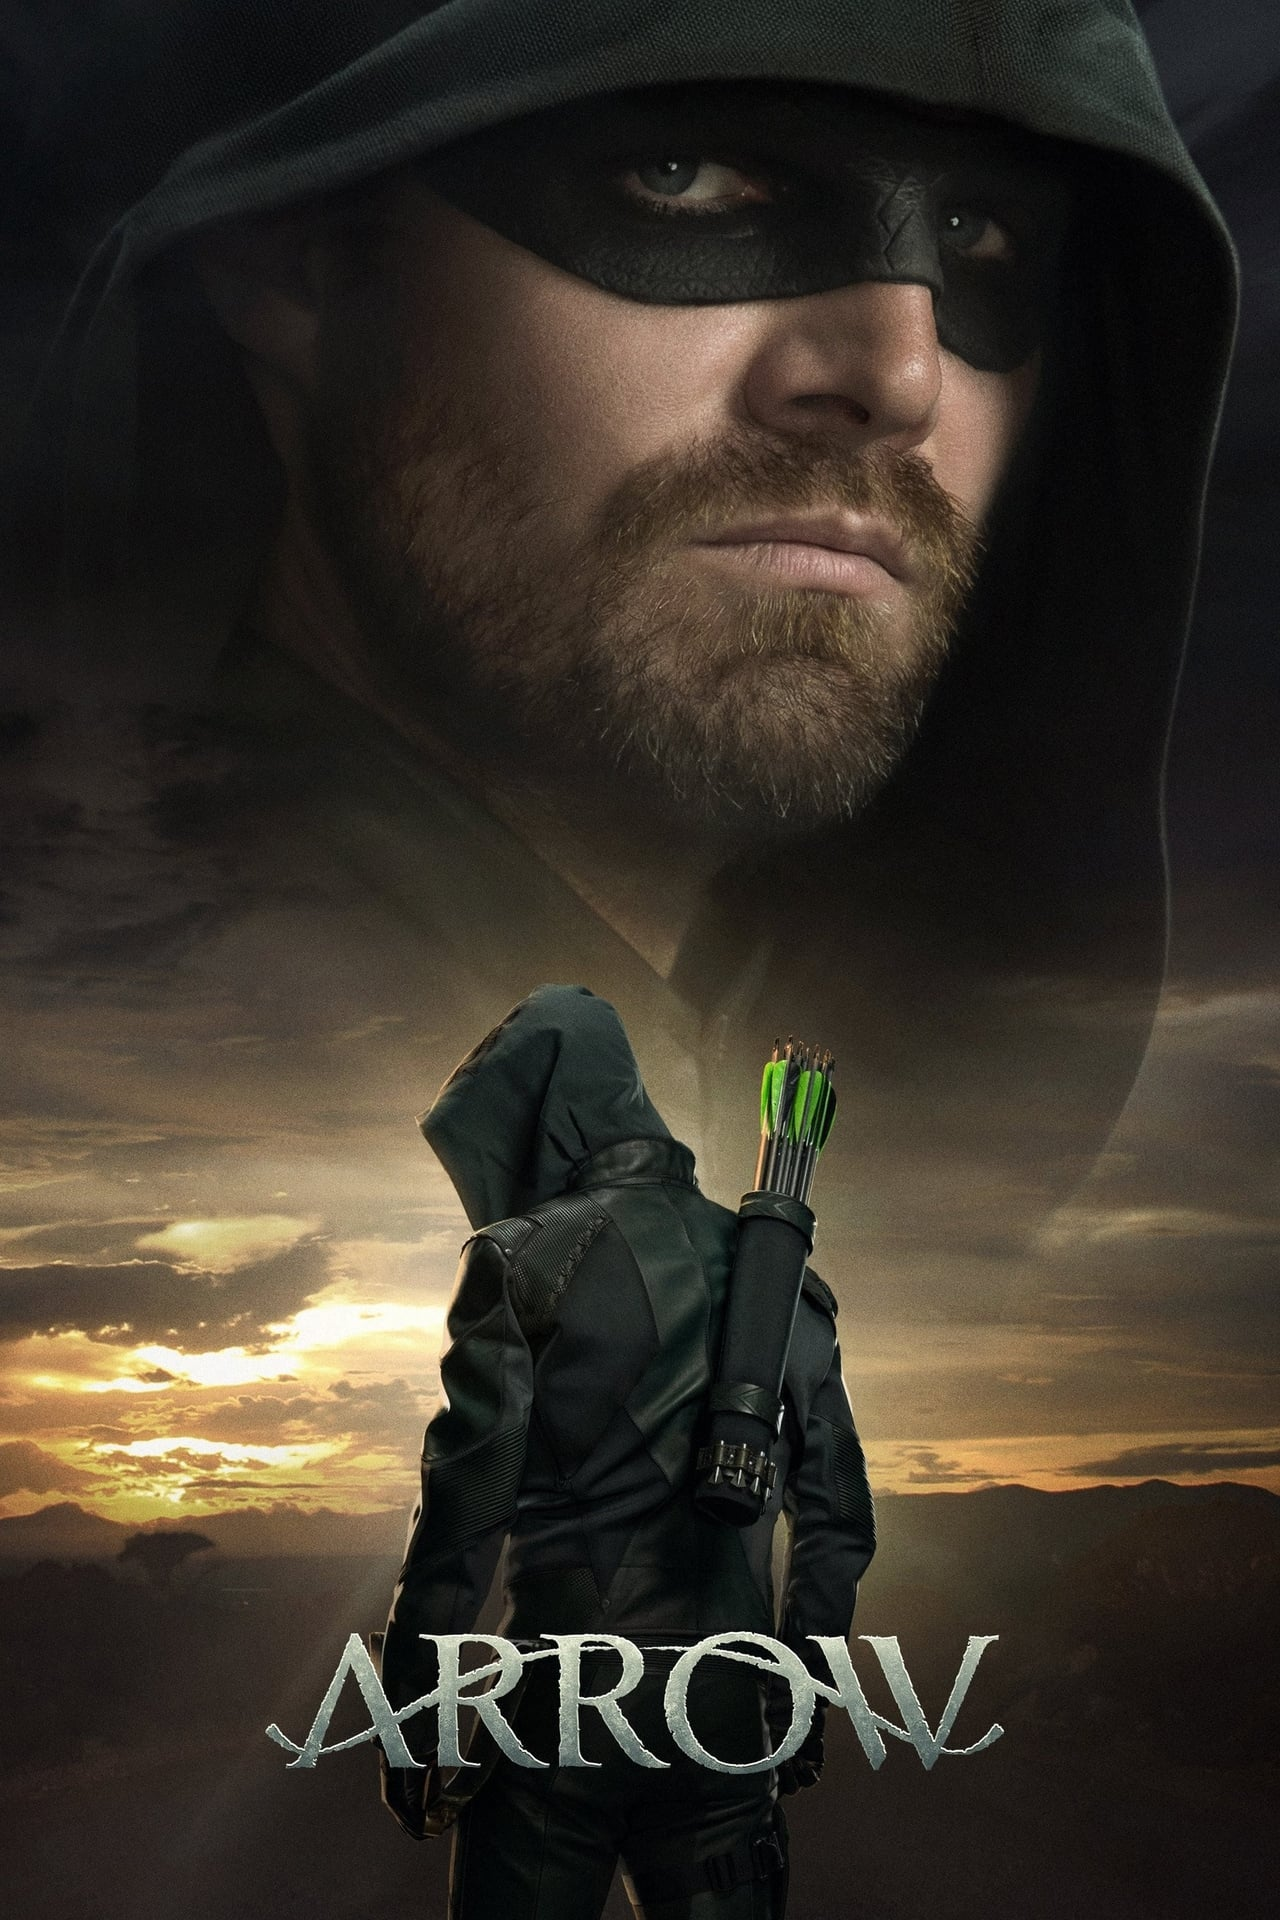 Arrow - Season 1 Episode 21 : La iniciativa